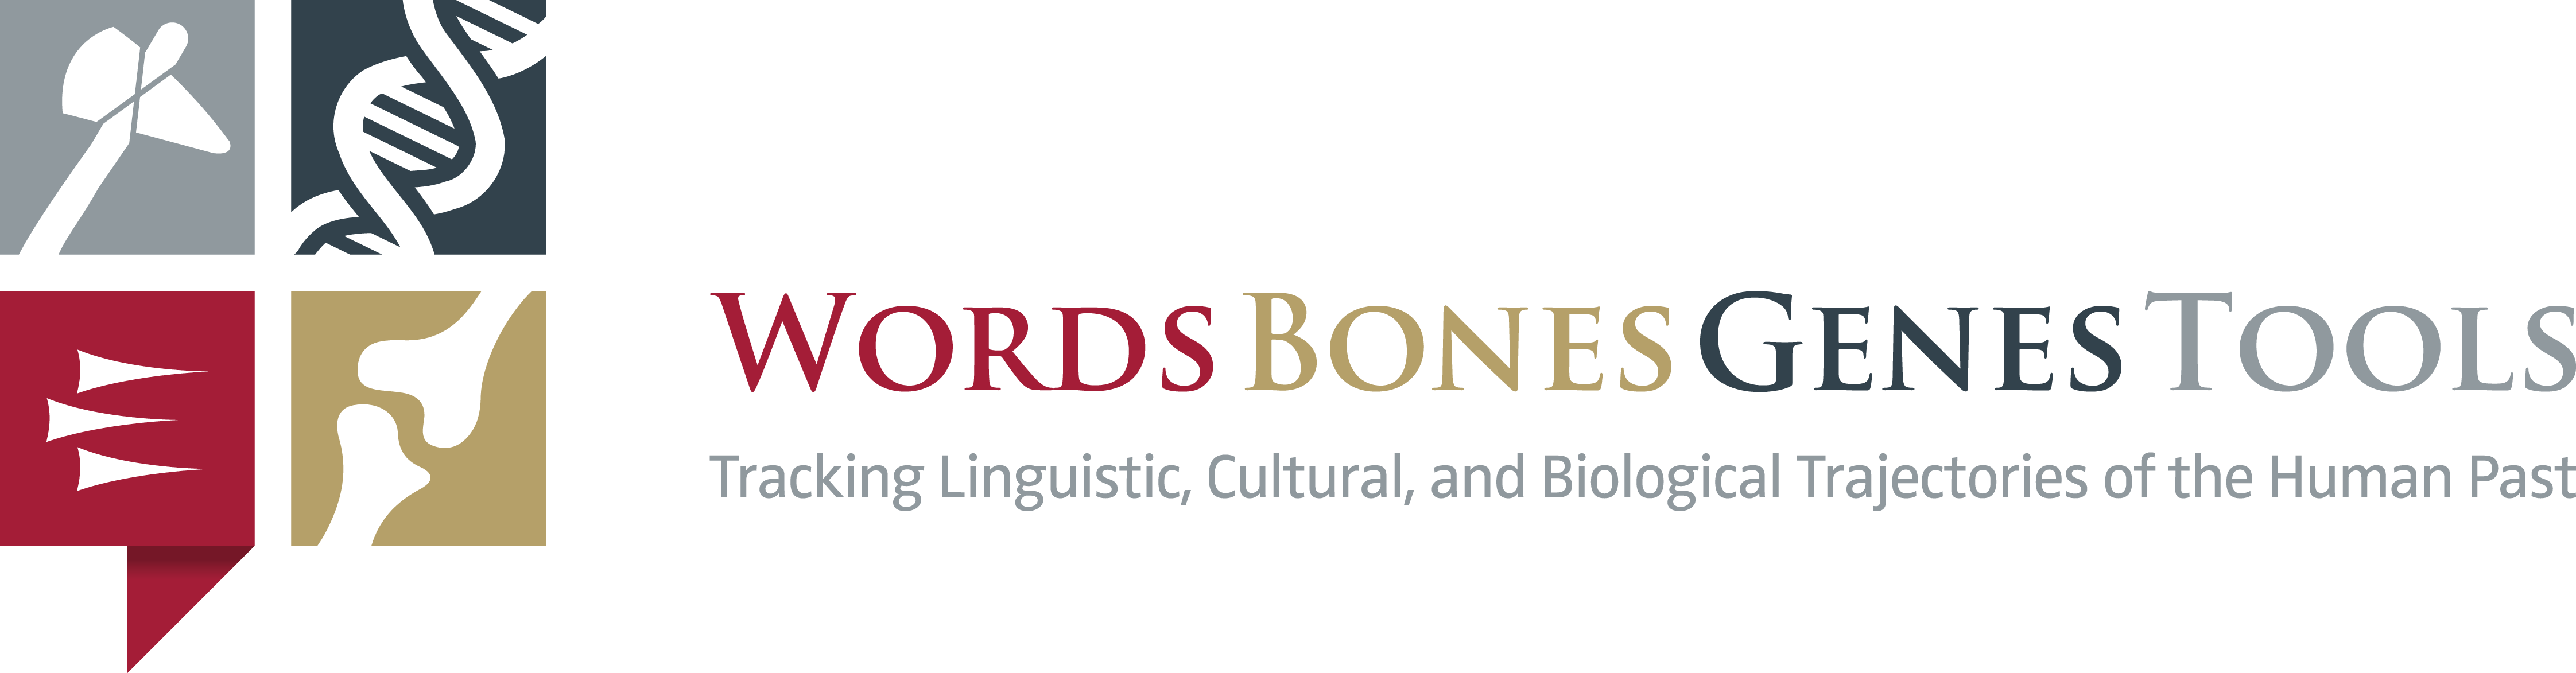 Words, Bones, Genes, Tools